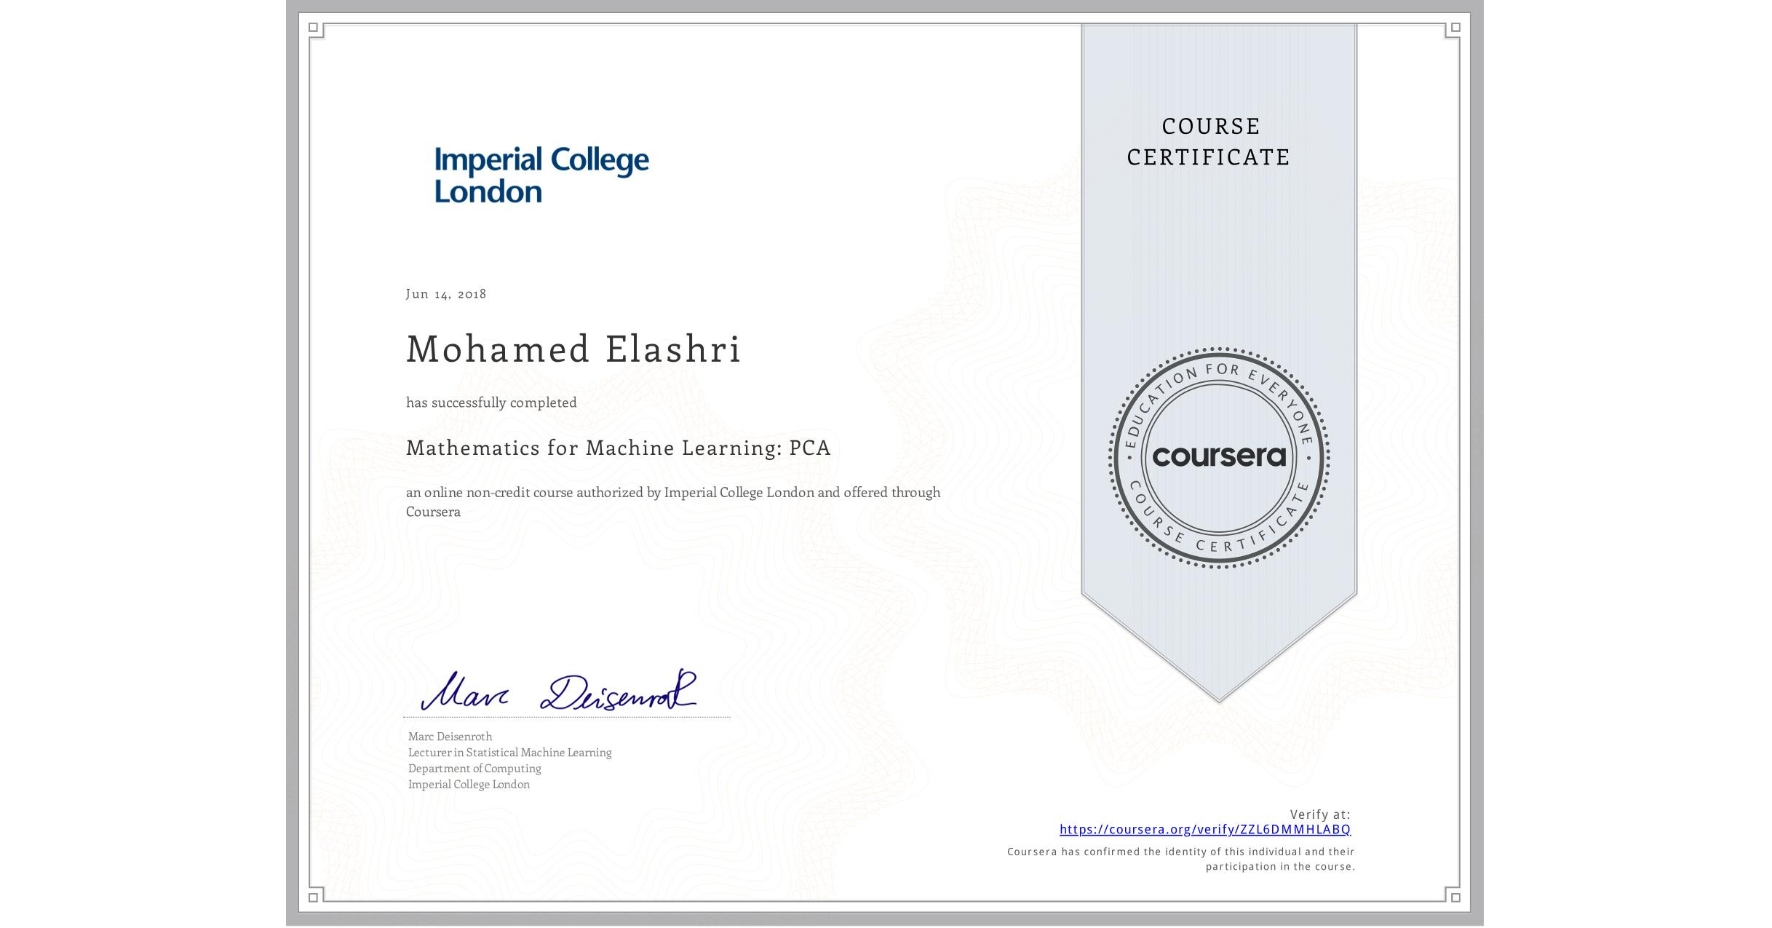 View certificate for Mohamed Elashri, Mathematics for Machine Learning: PCA, an online non-credit course authorized by Imperial College London and offered through Coursera